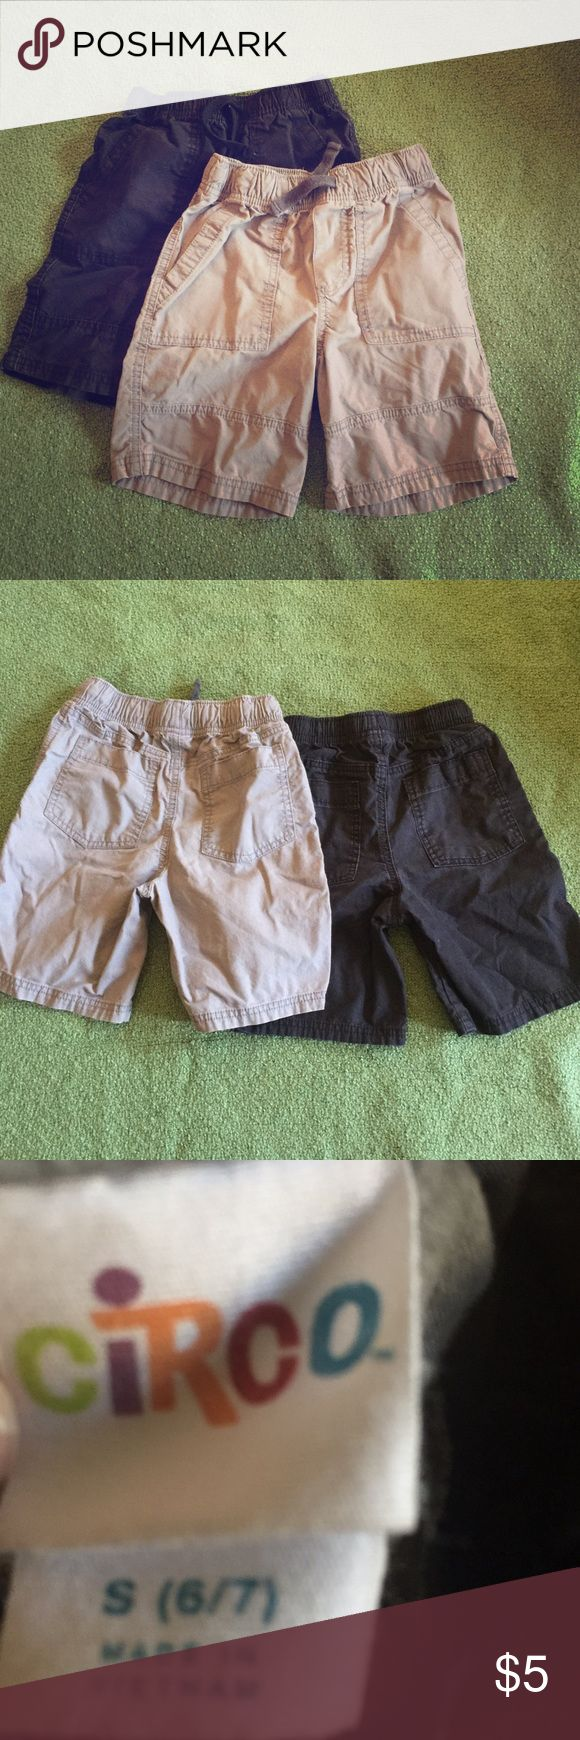 Lot of 2 Circo boys Cargo Shorts Sz6/7 Set of two cargo short one gray and one black. My son grows out of his clothes pretty quick. No flaws, great condition. Circo Bottoms Shorts